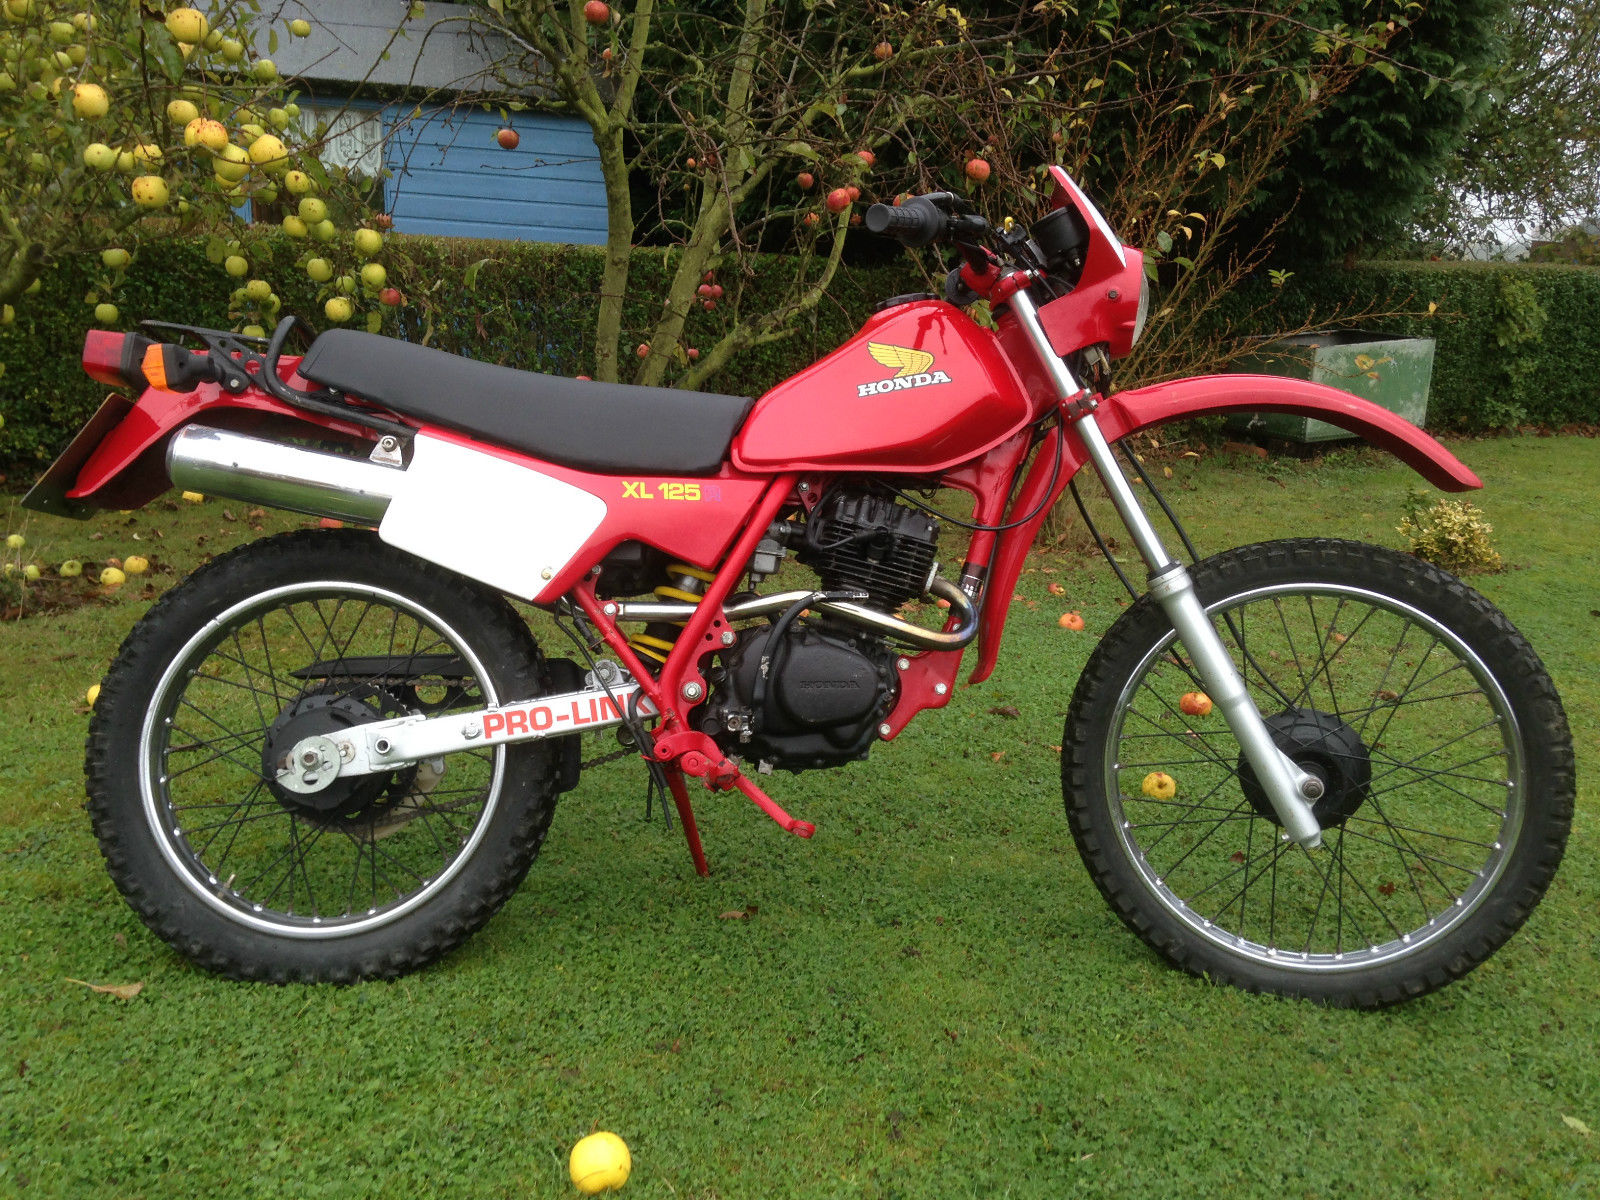 1982 honda xl125rc xl 125 r tl cb cg xr nice collectable bike. Black Bedroom Furniture Sets. Home Design Ideas